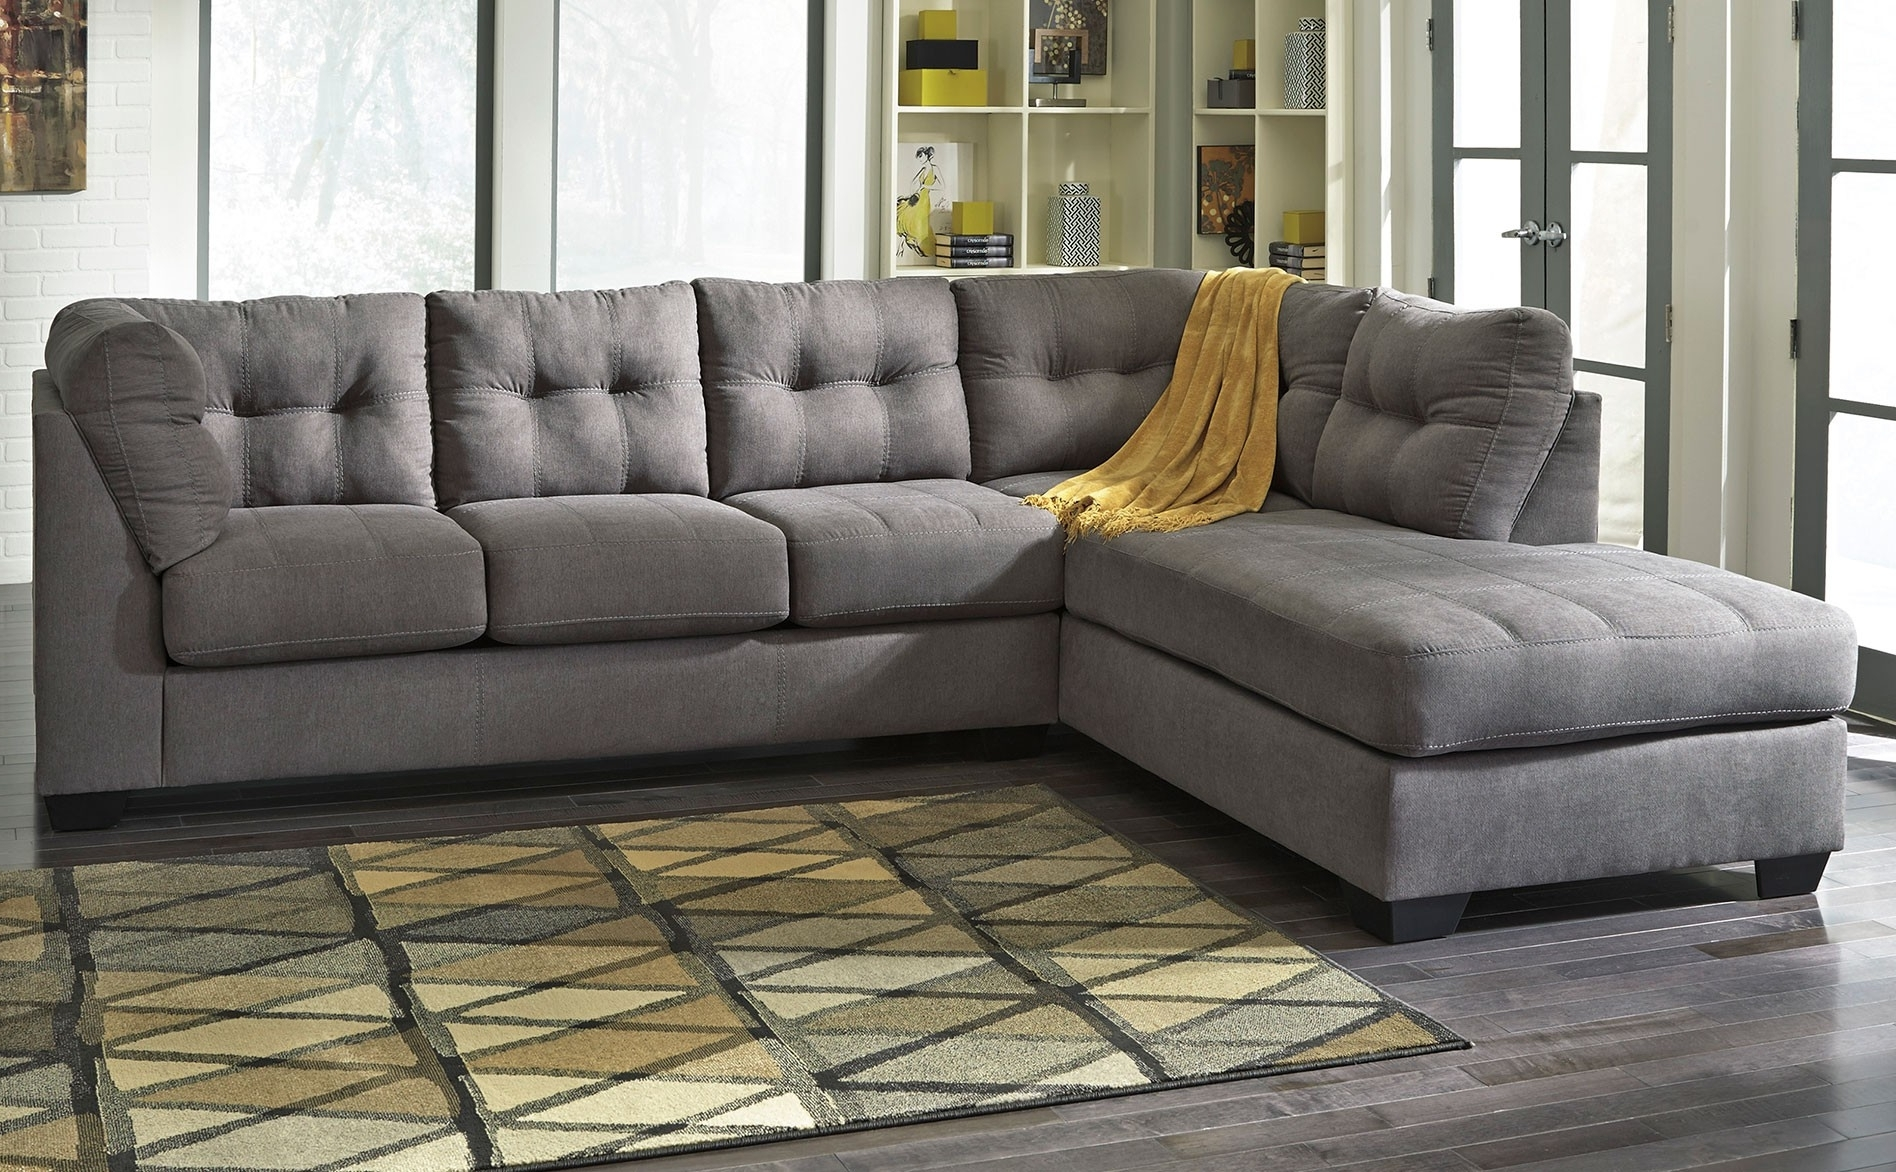 Fashionable Sofas: Mesmerizing Macys Sectional Sofa For Best Living Room Decor In Tufted Sofas With Chaise (View 4 of 15)